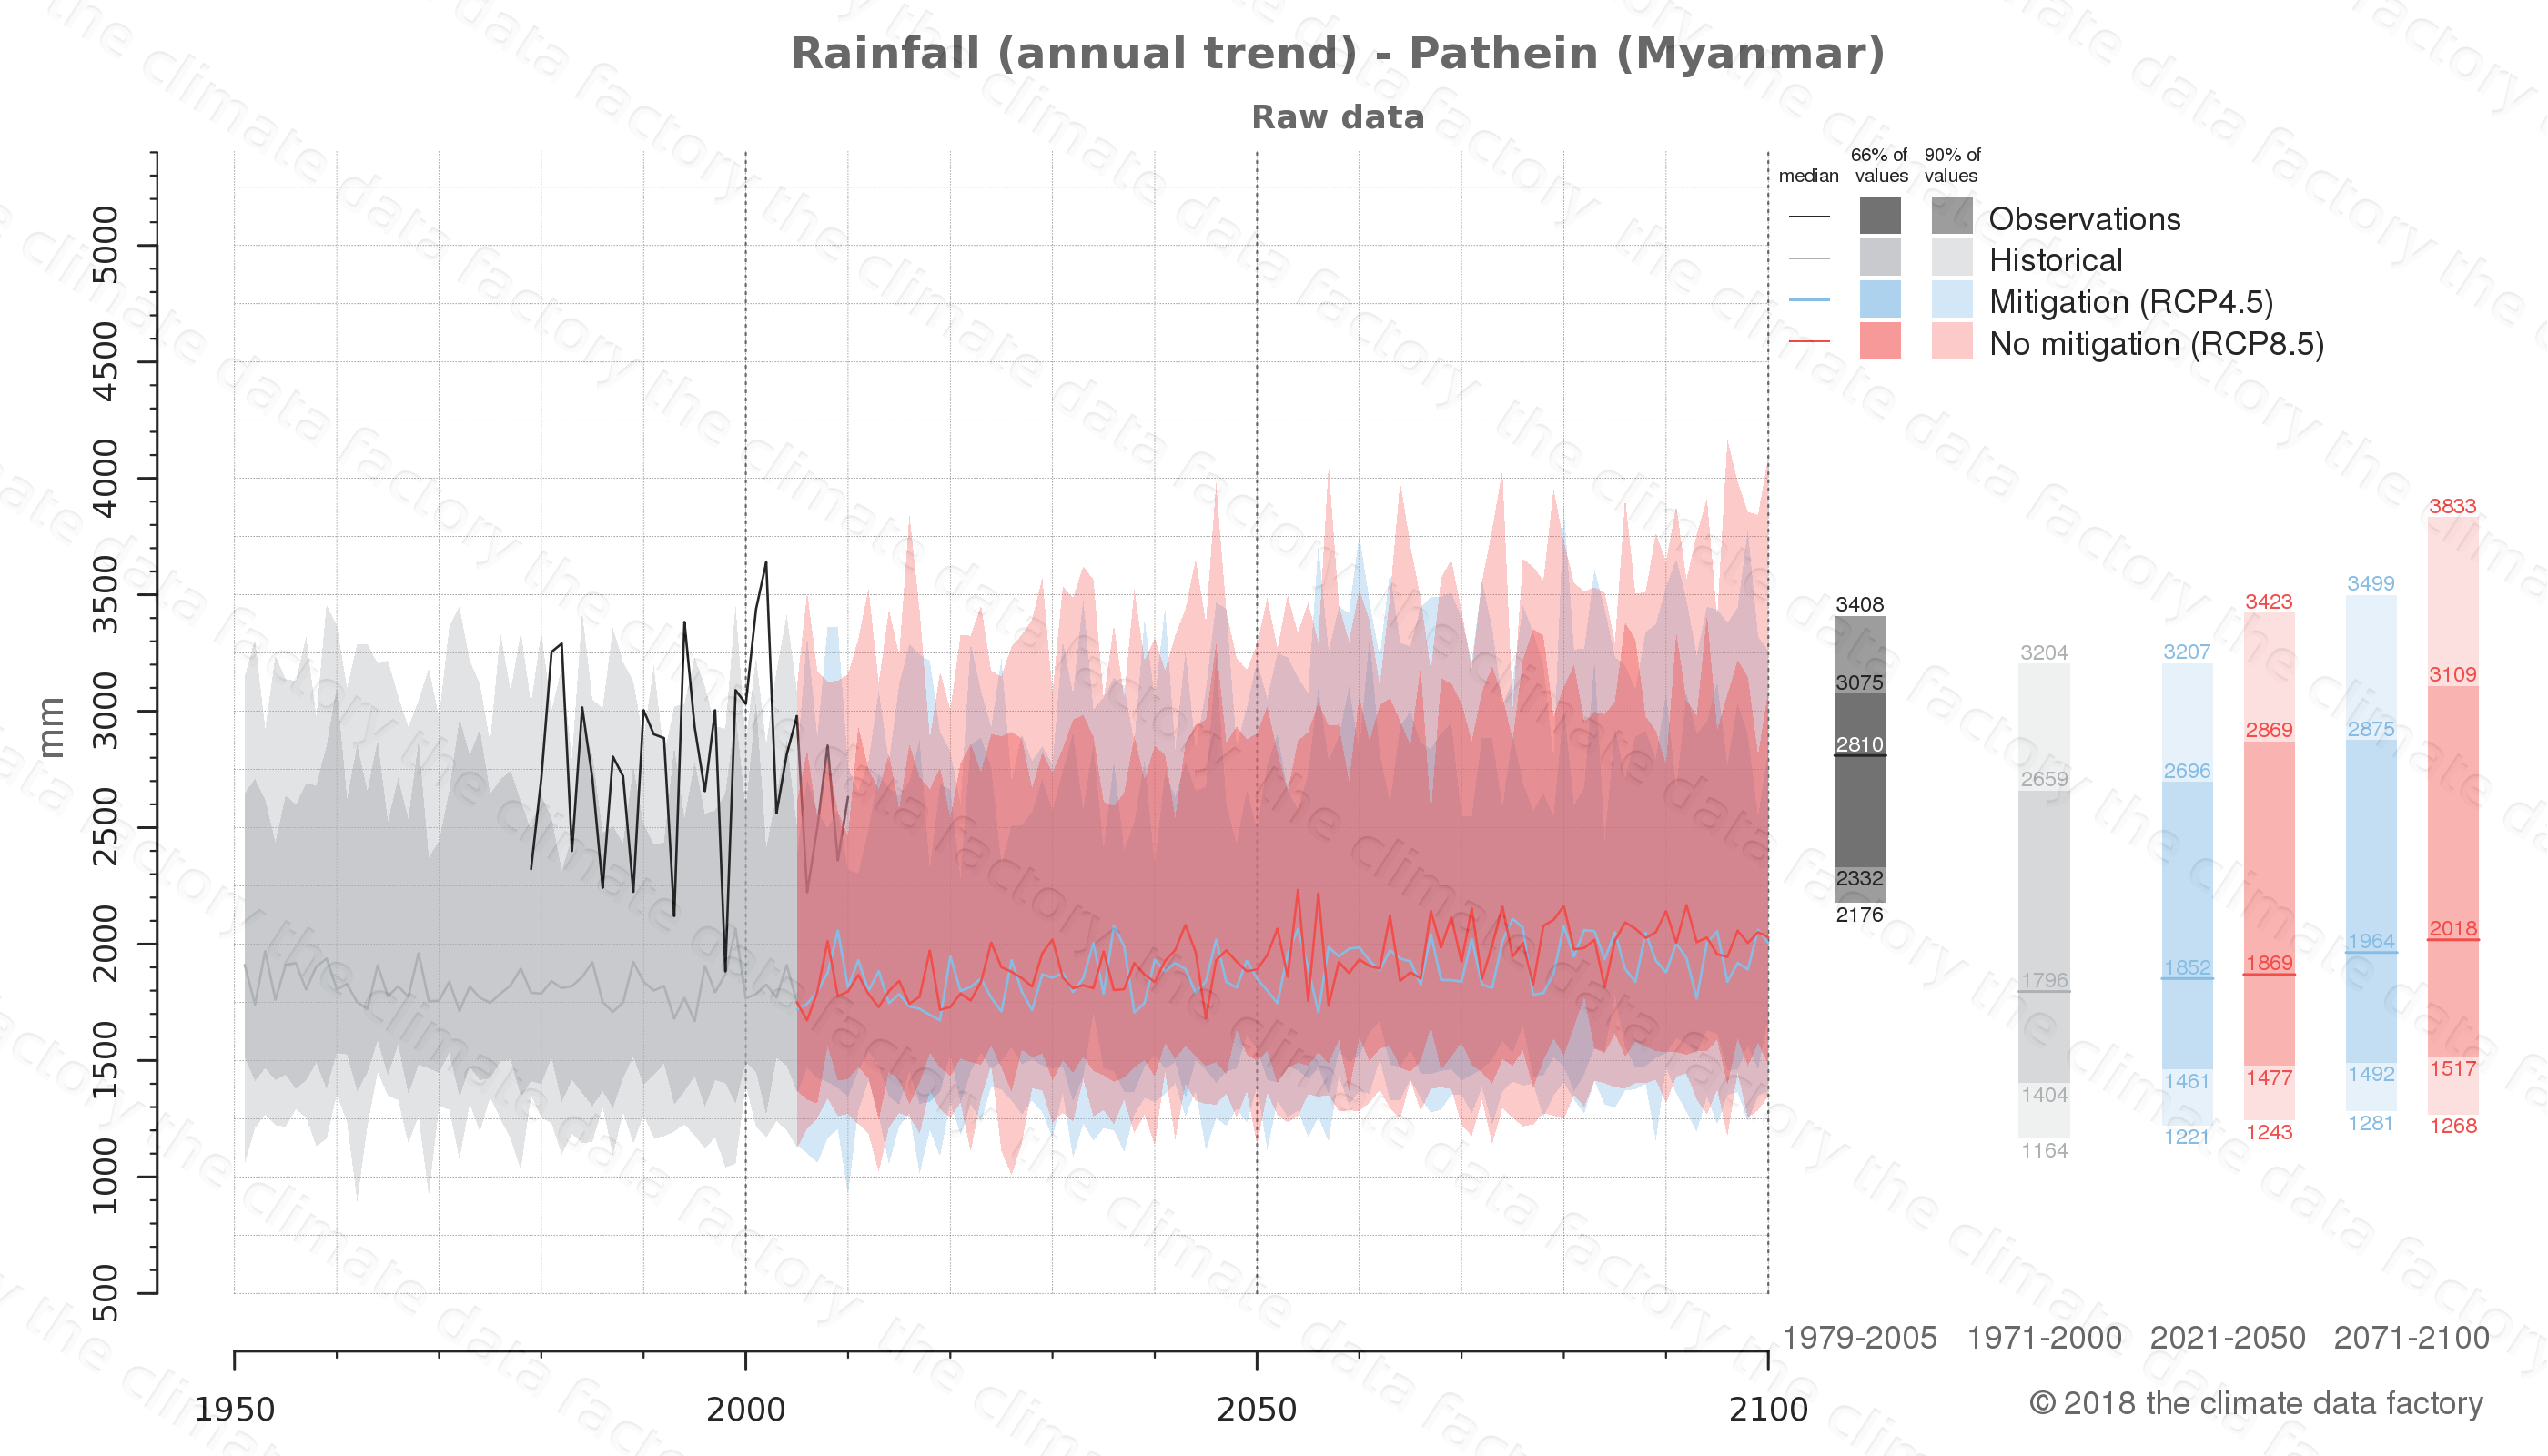 climate change data policy adaptation climate graph city data rainfall pathein myanmar